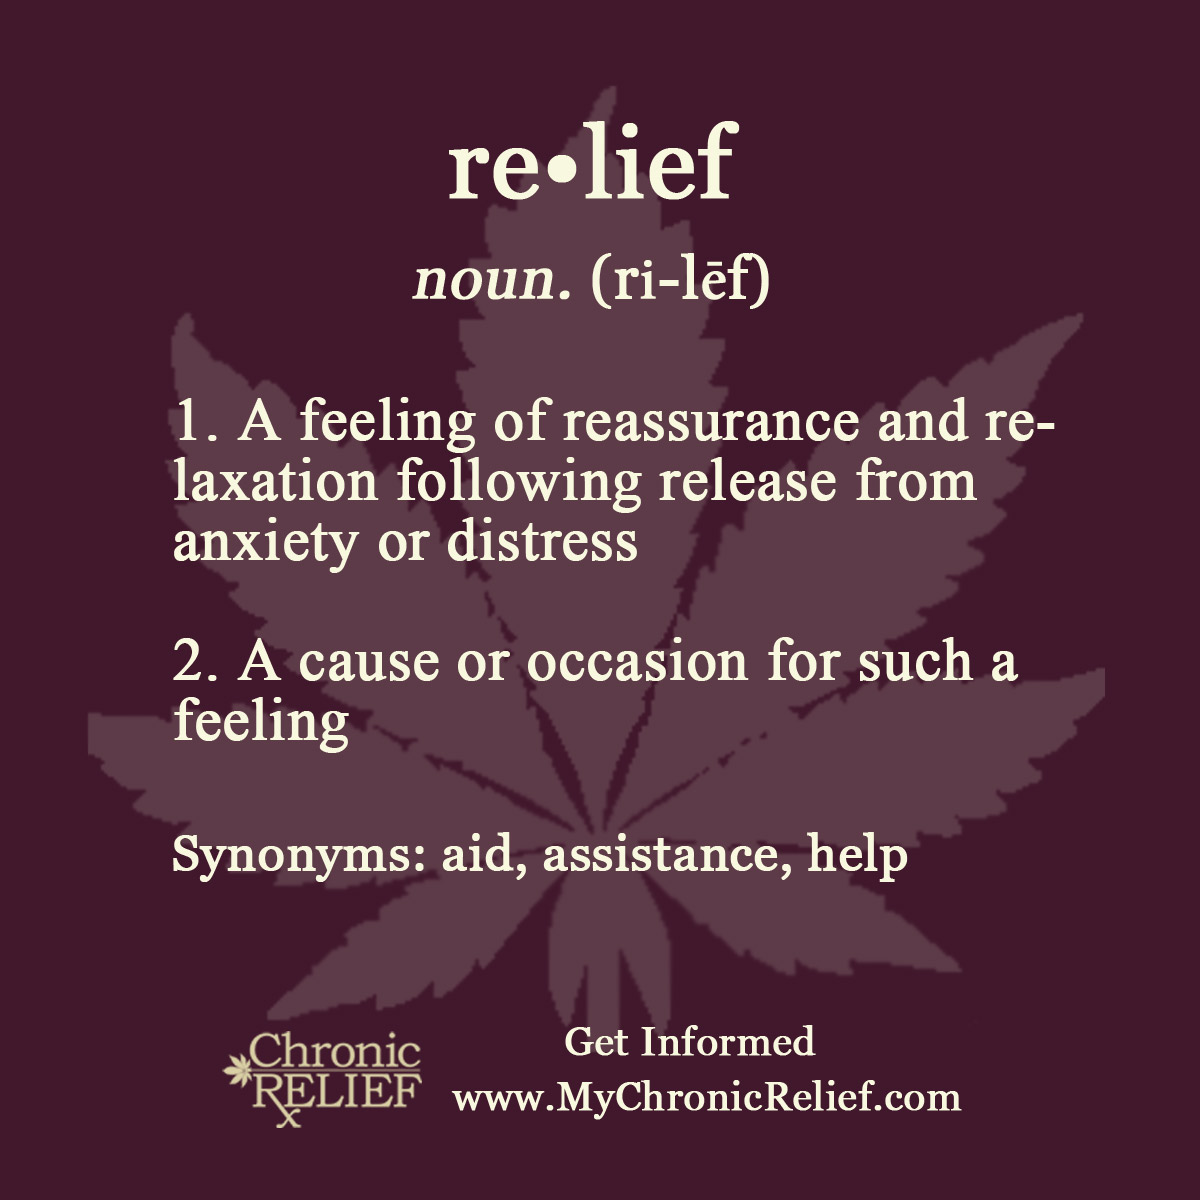 What is the relief